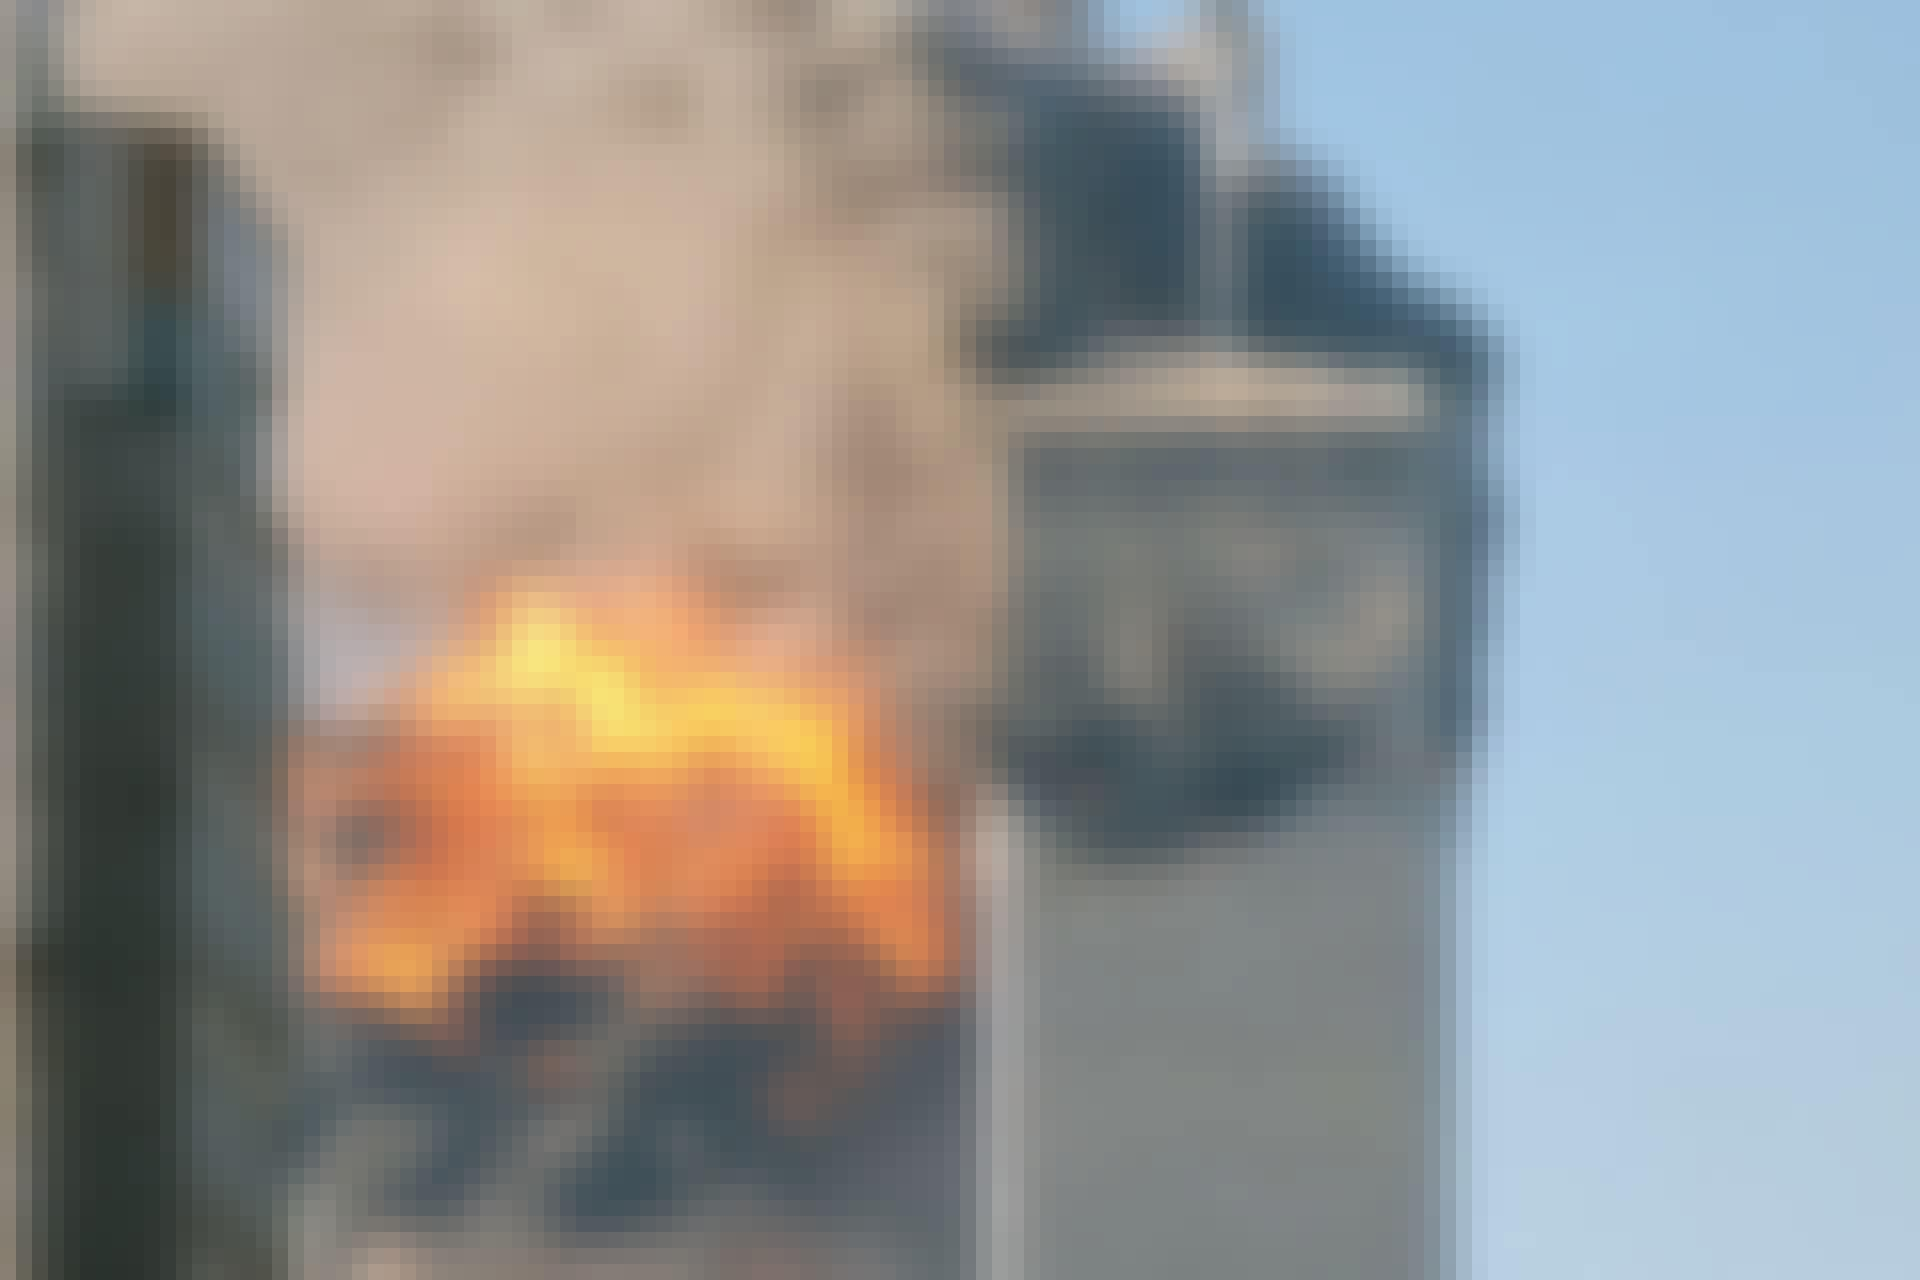 World Trade Center eksplosion